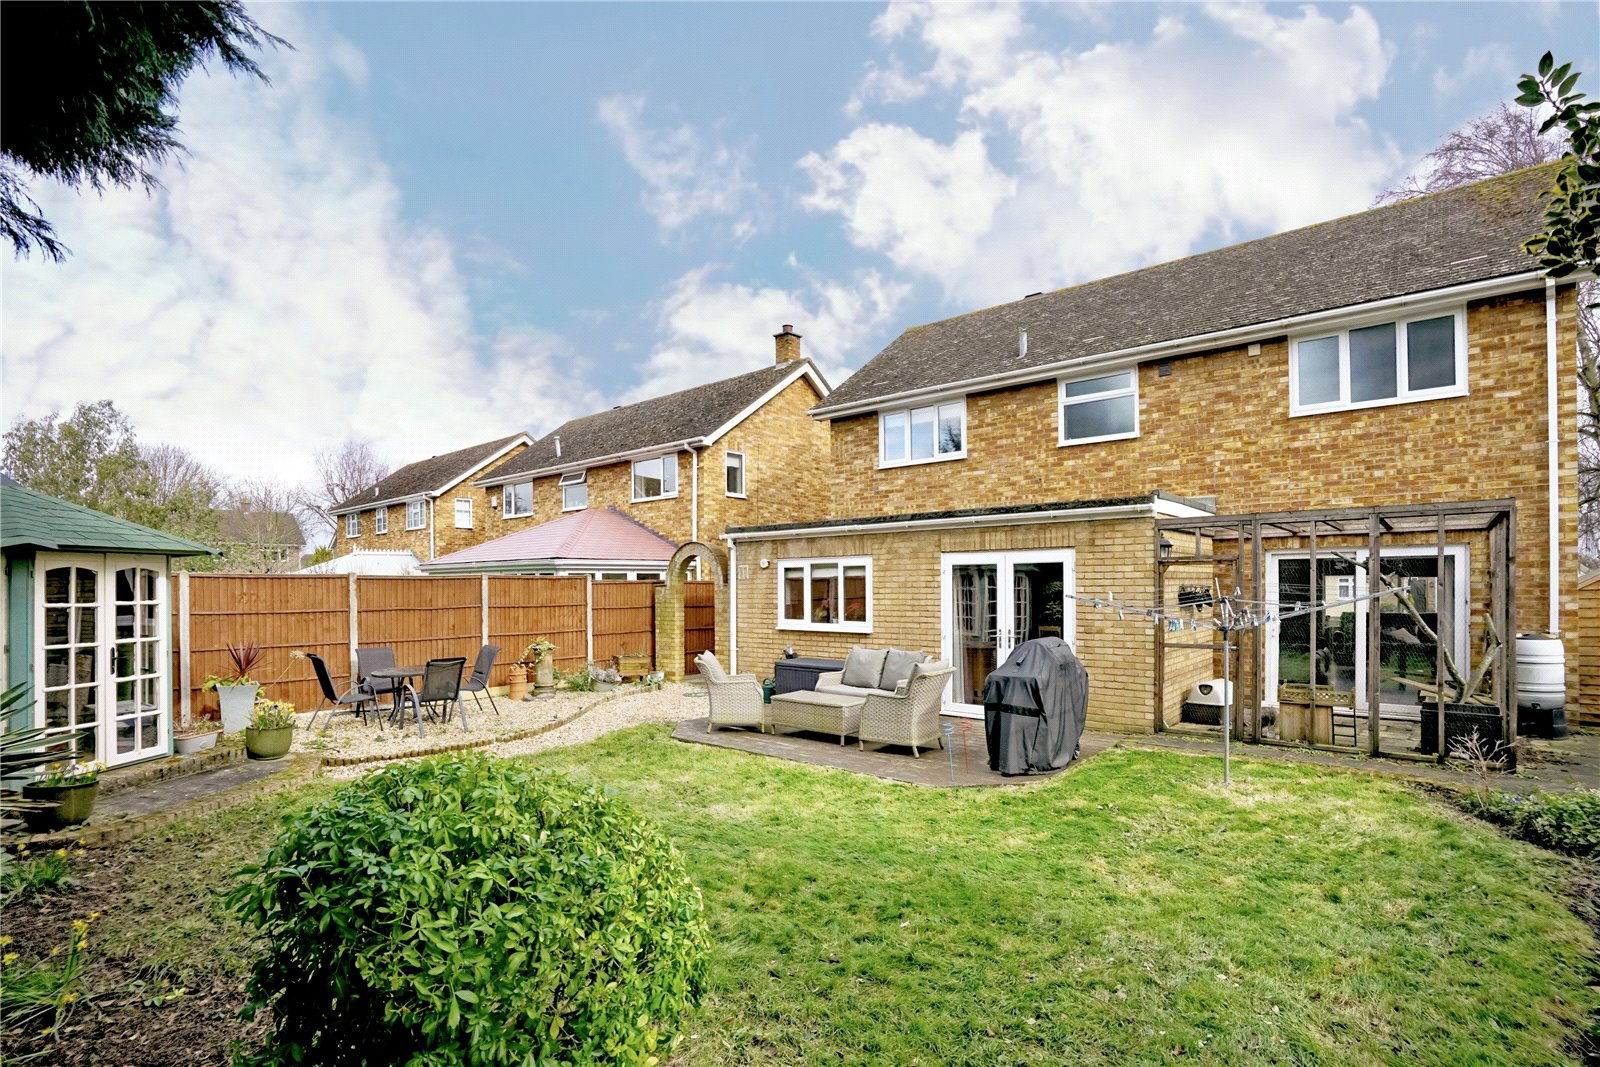 3 bed house for sale in Barley Road, Eaton Socon 5